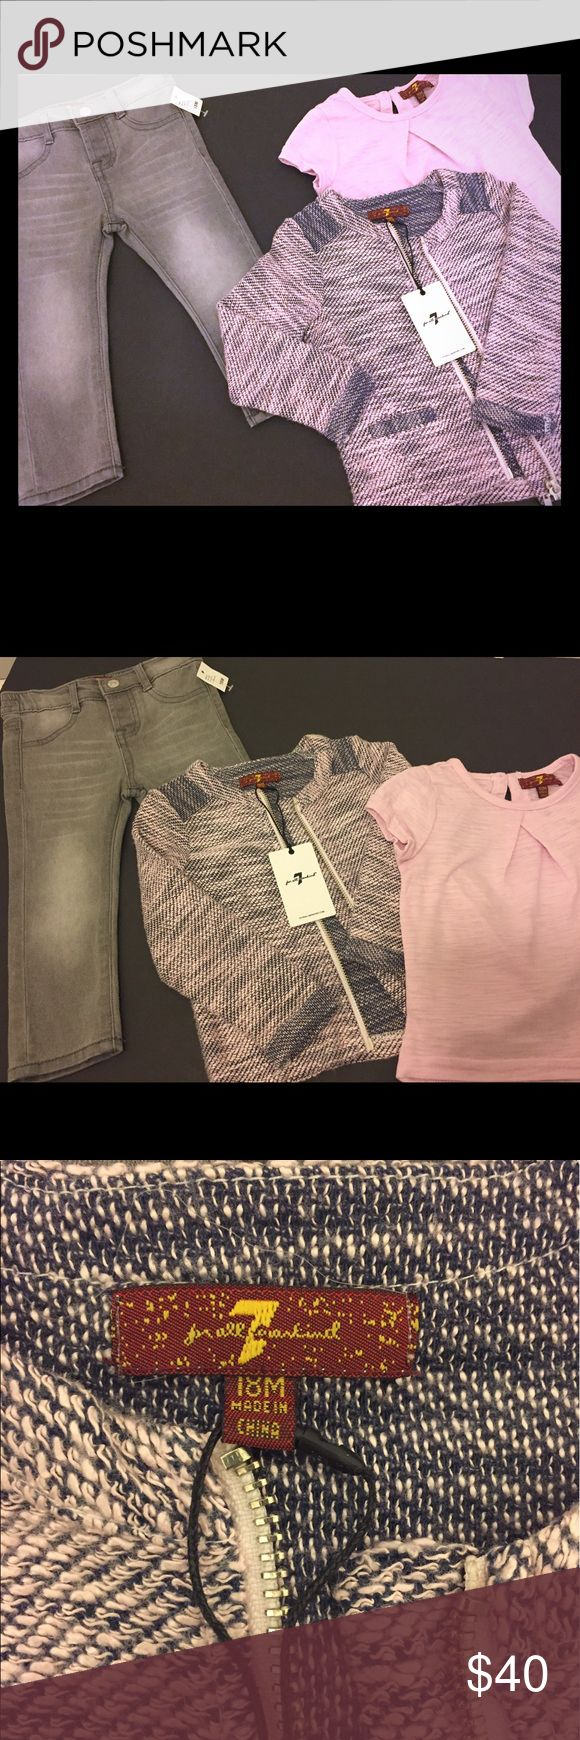 7 For All Mankind Toddler Girls 3 Piece Suit🎉sale Gorgeous 3 piece suit!!! Gray jeans with pink short sleeve shirt and gray and pink zipper cardigan sweater. 7 For All Mankind Matching Sets